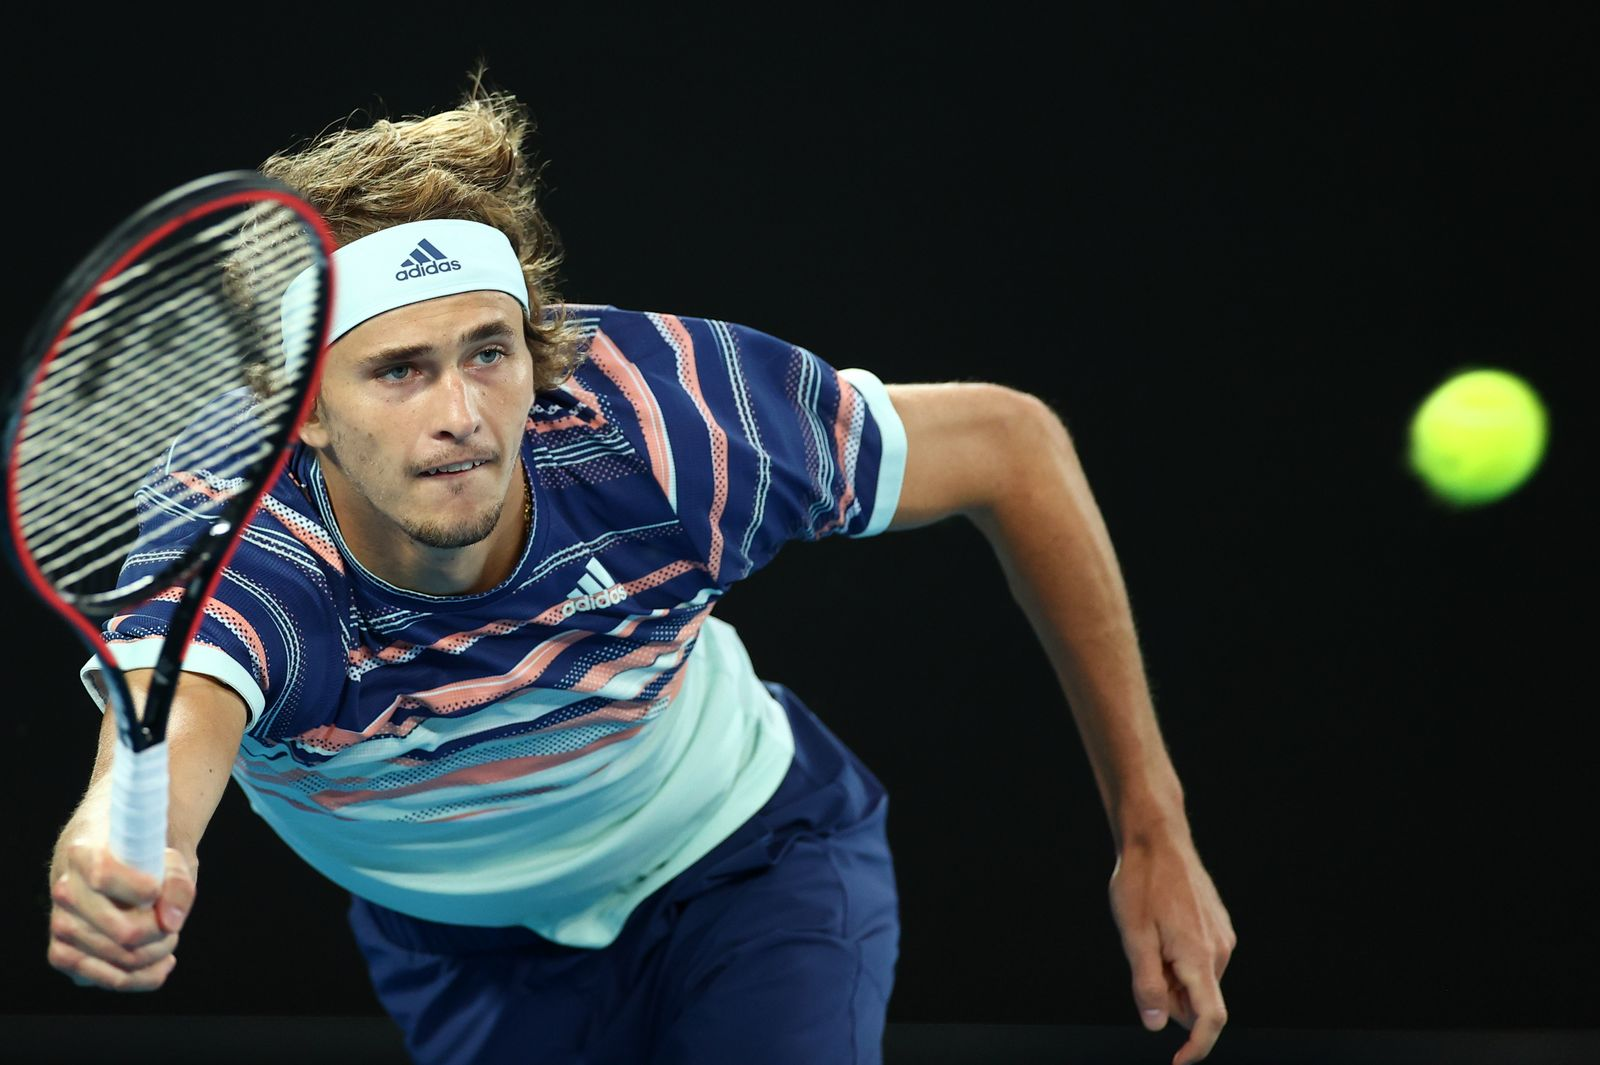 Tennis - Australian Open - Semi Final